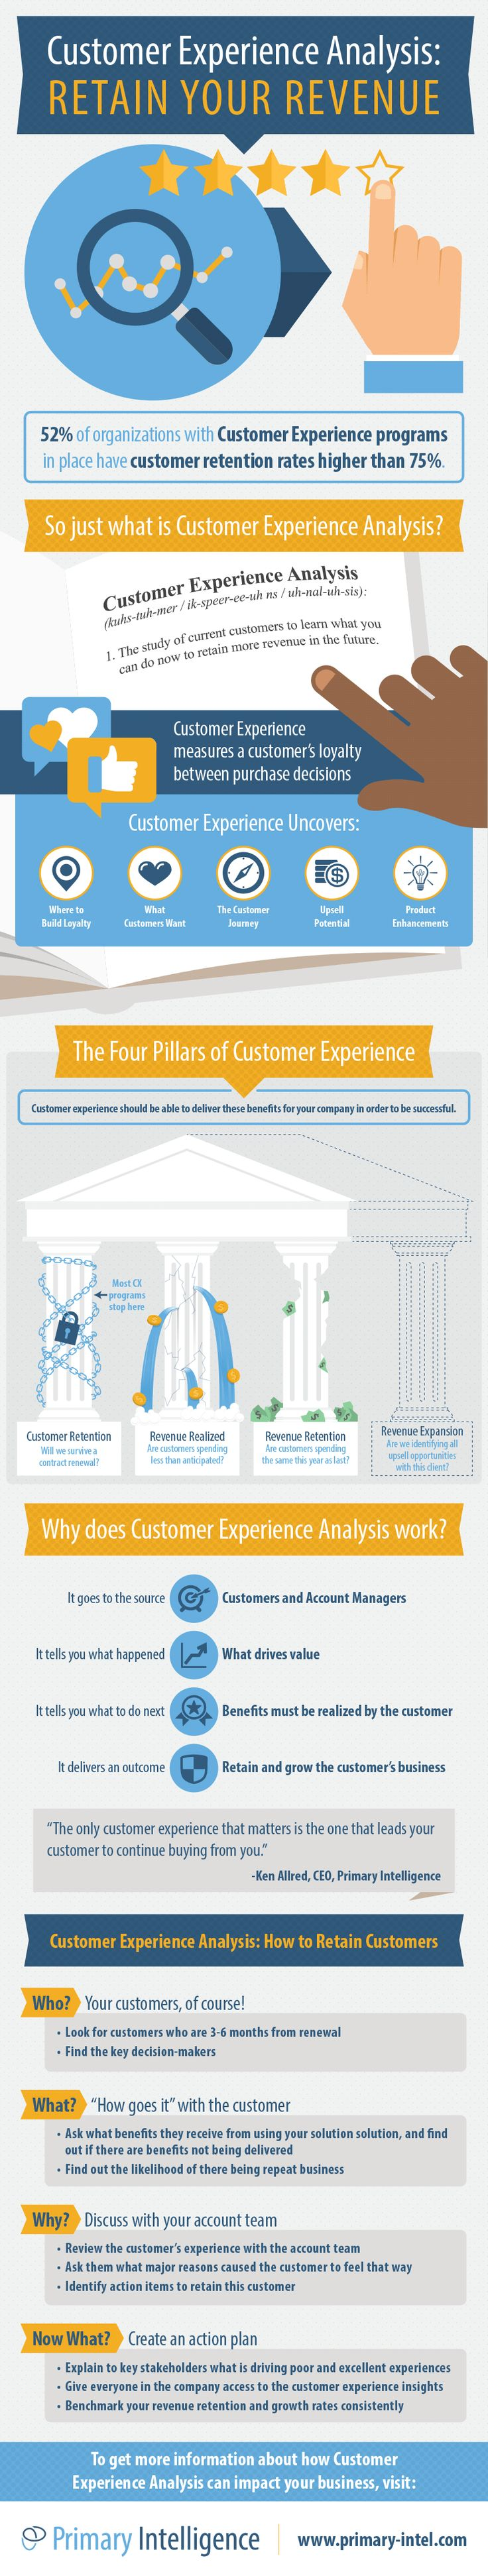 Customer Experience retains revenue by measuring a customer's loyalty between purchase decisions. https://www.primary-intel.com/resources/ebooks/customer-experience-analysis-infographic/